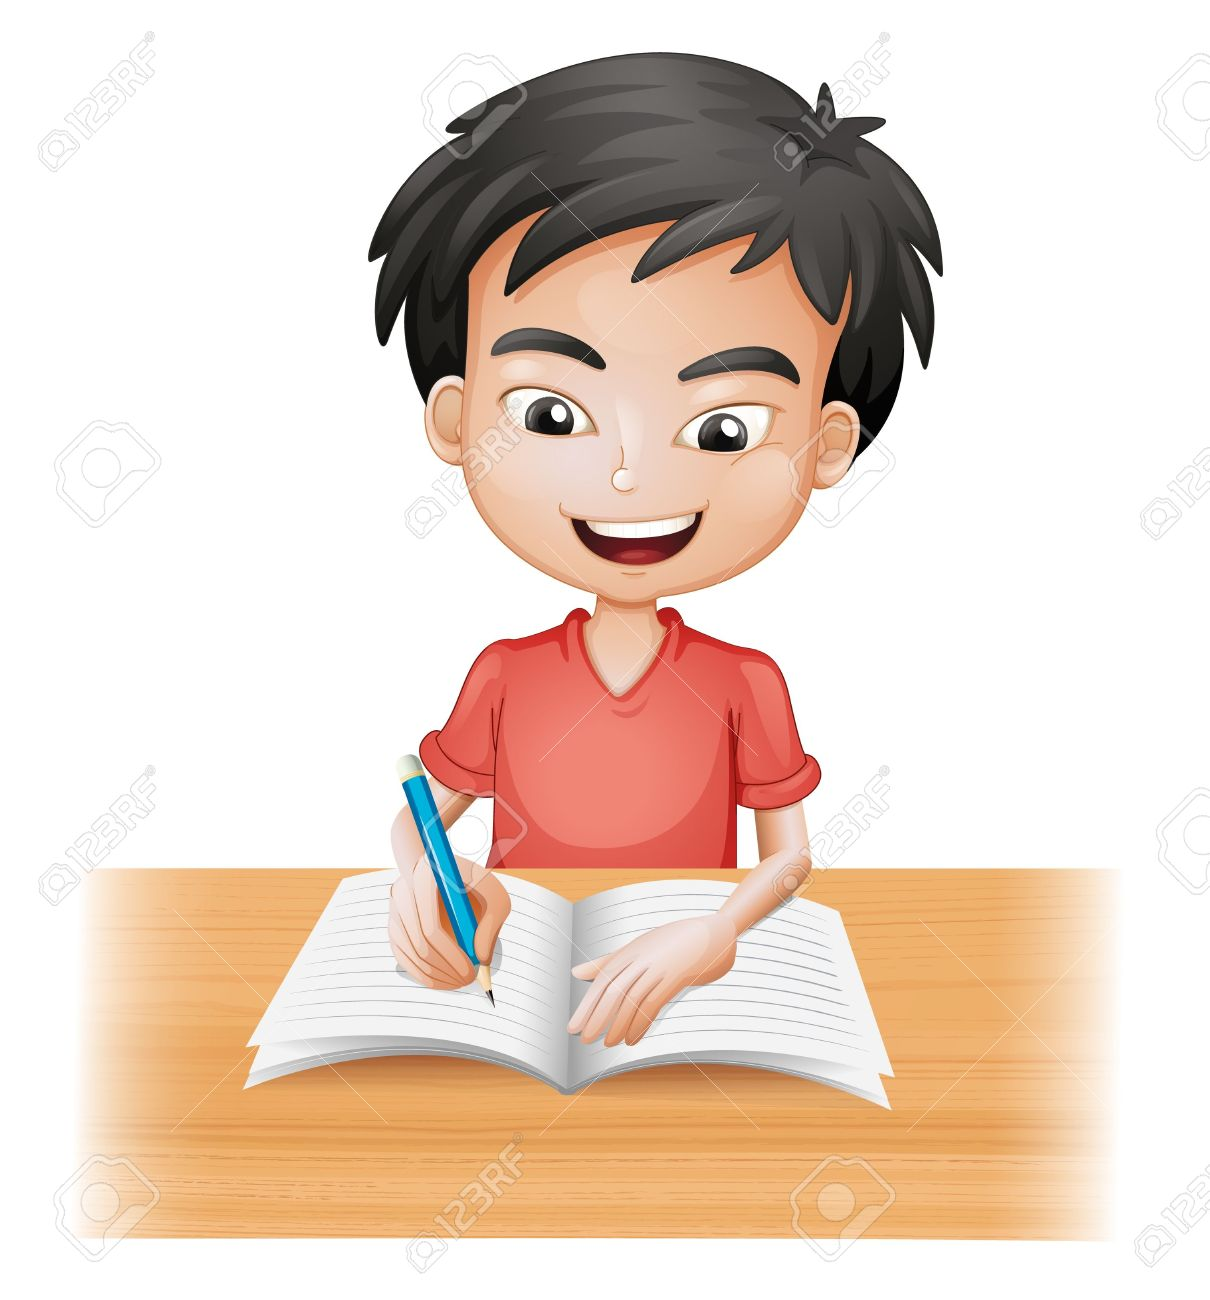 Illustration of a smiling boy writing on a white background - 17443650